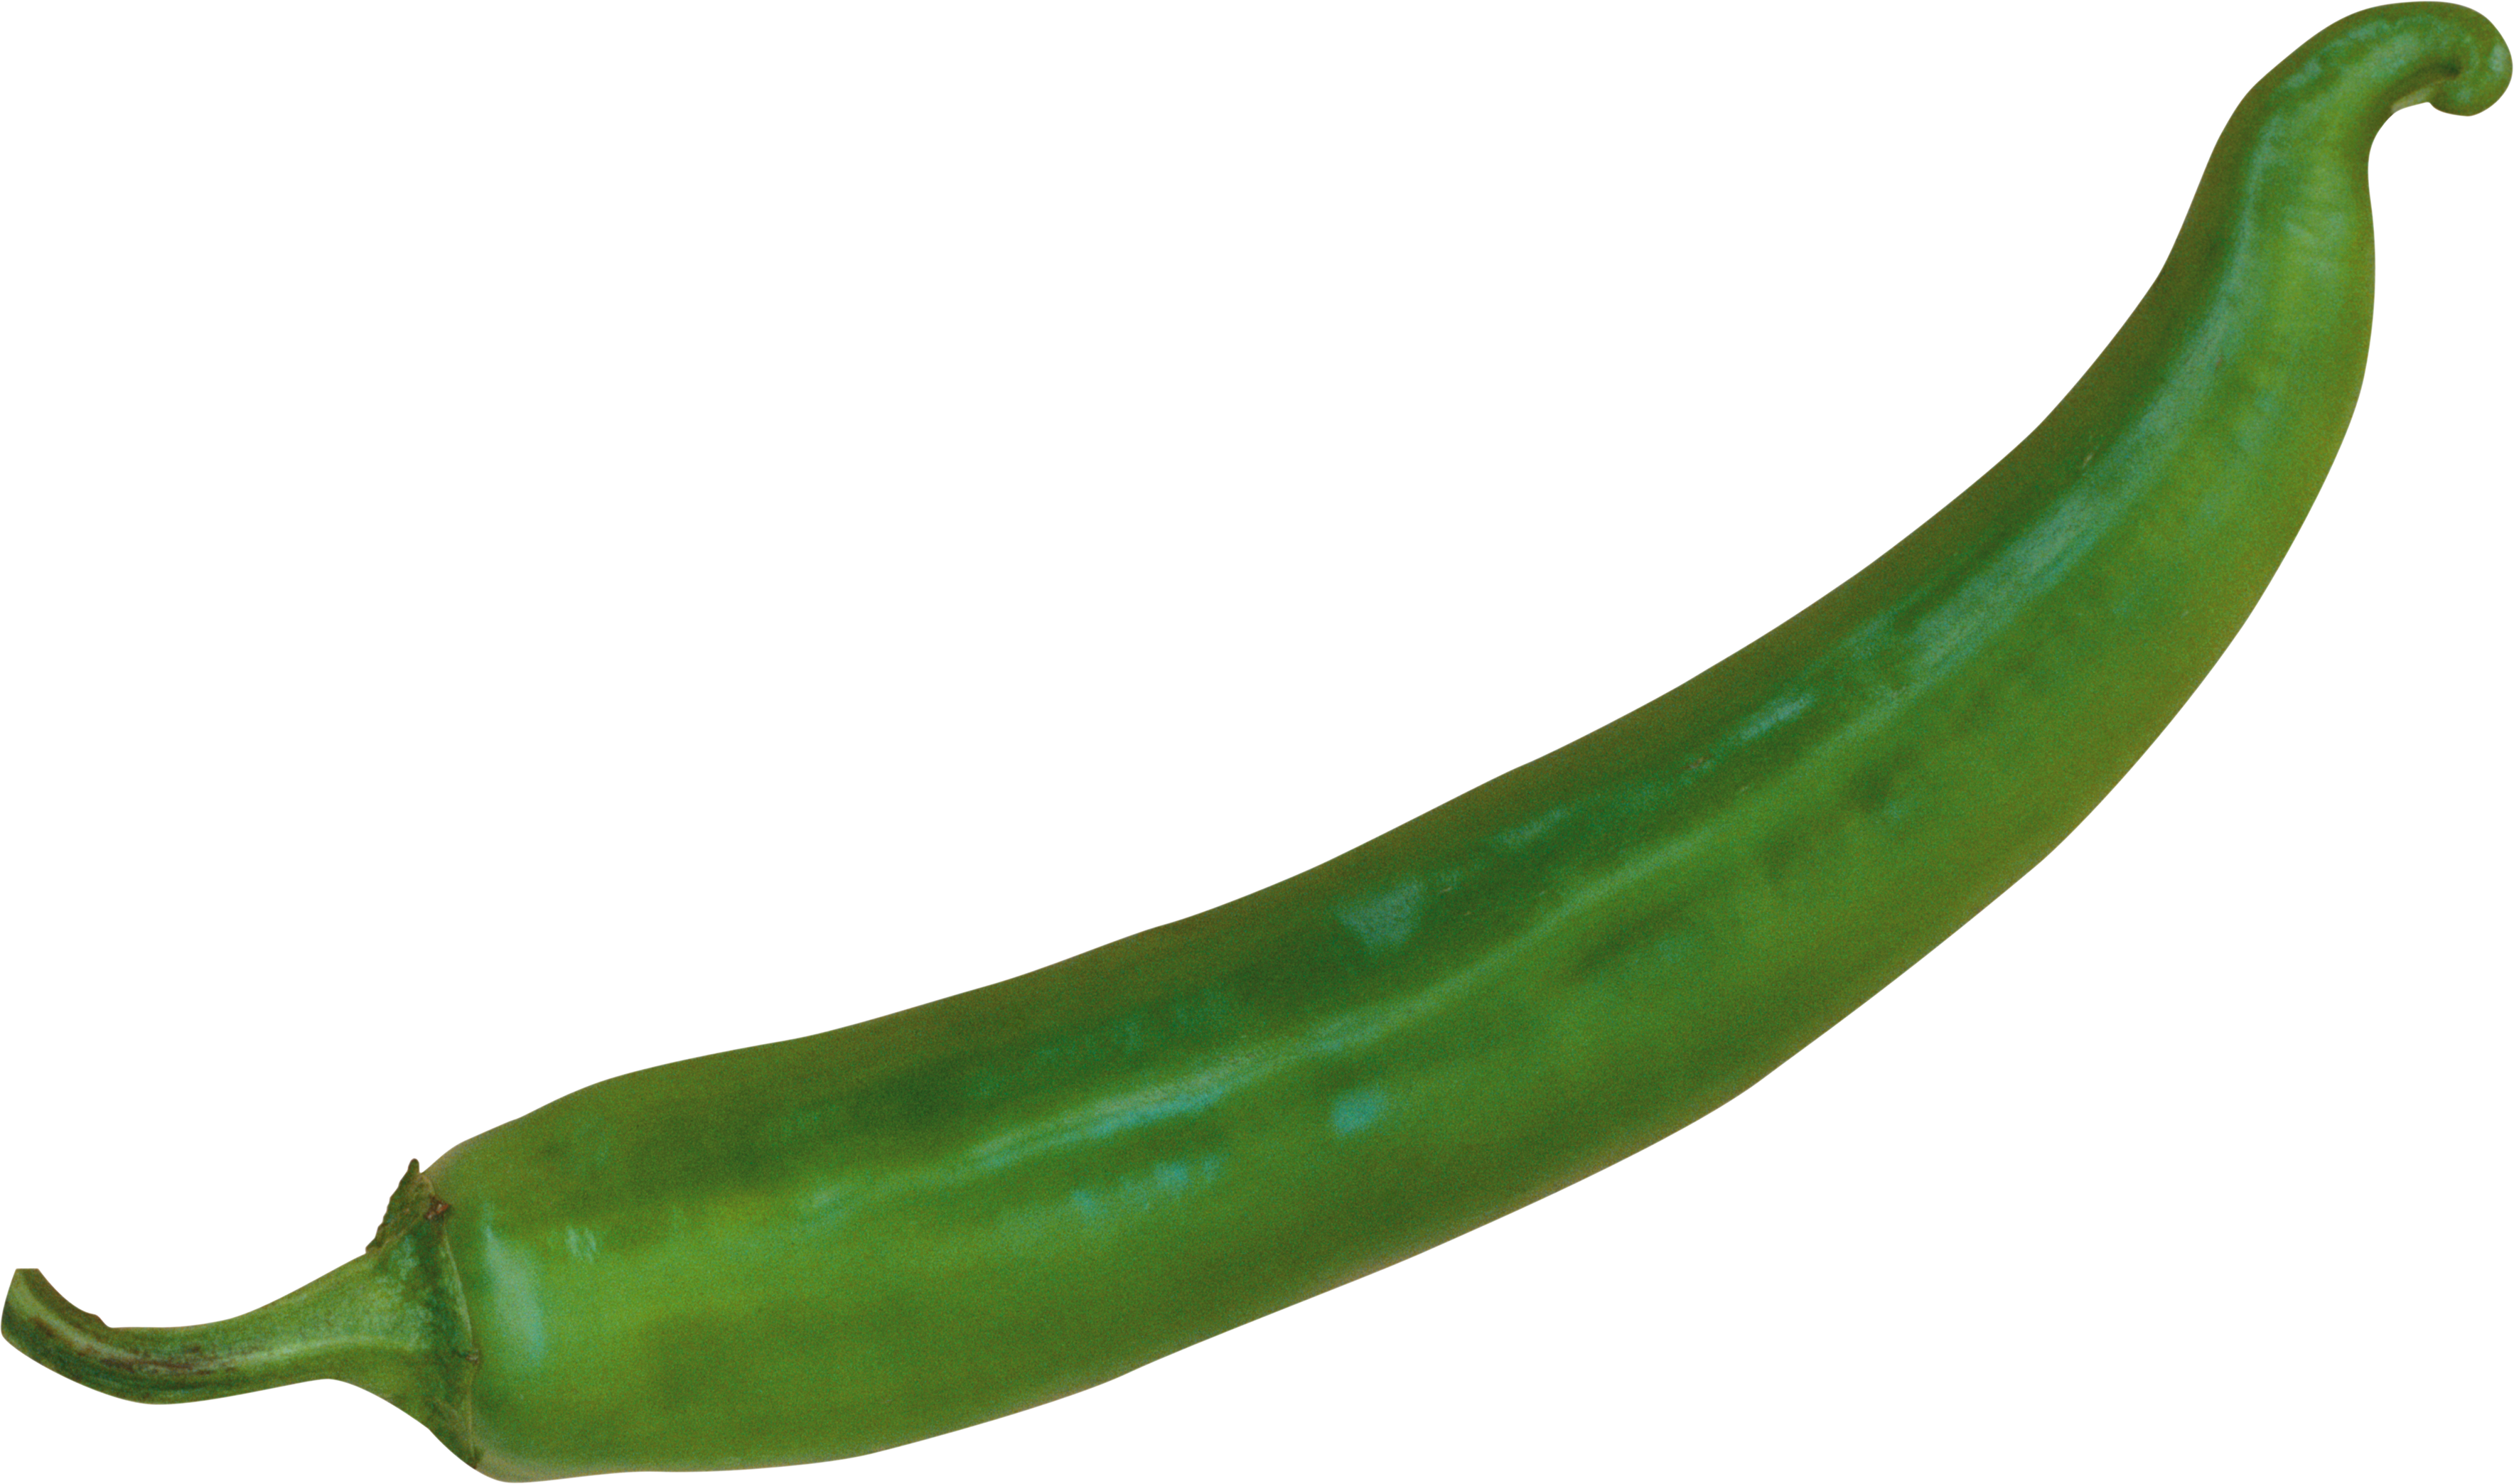 Best Chili PNG - 153380